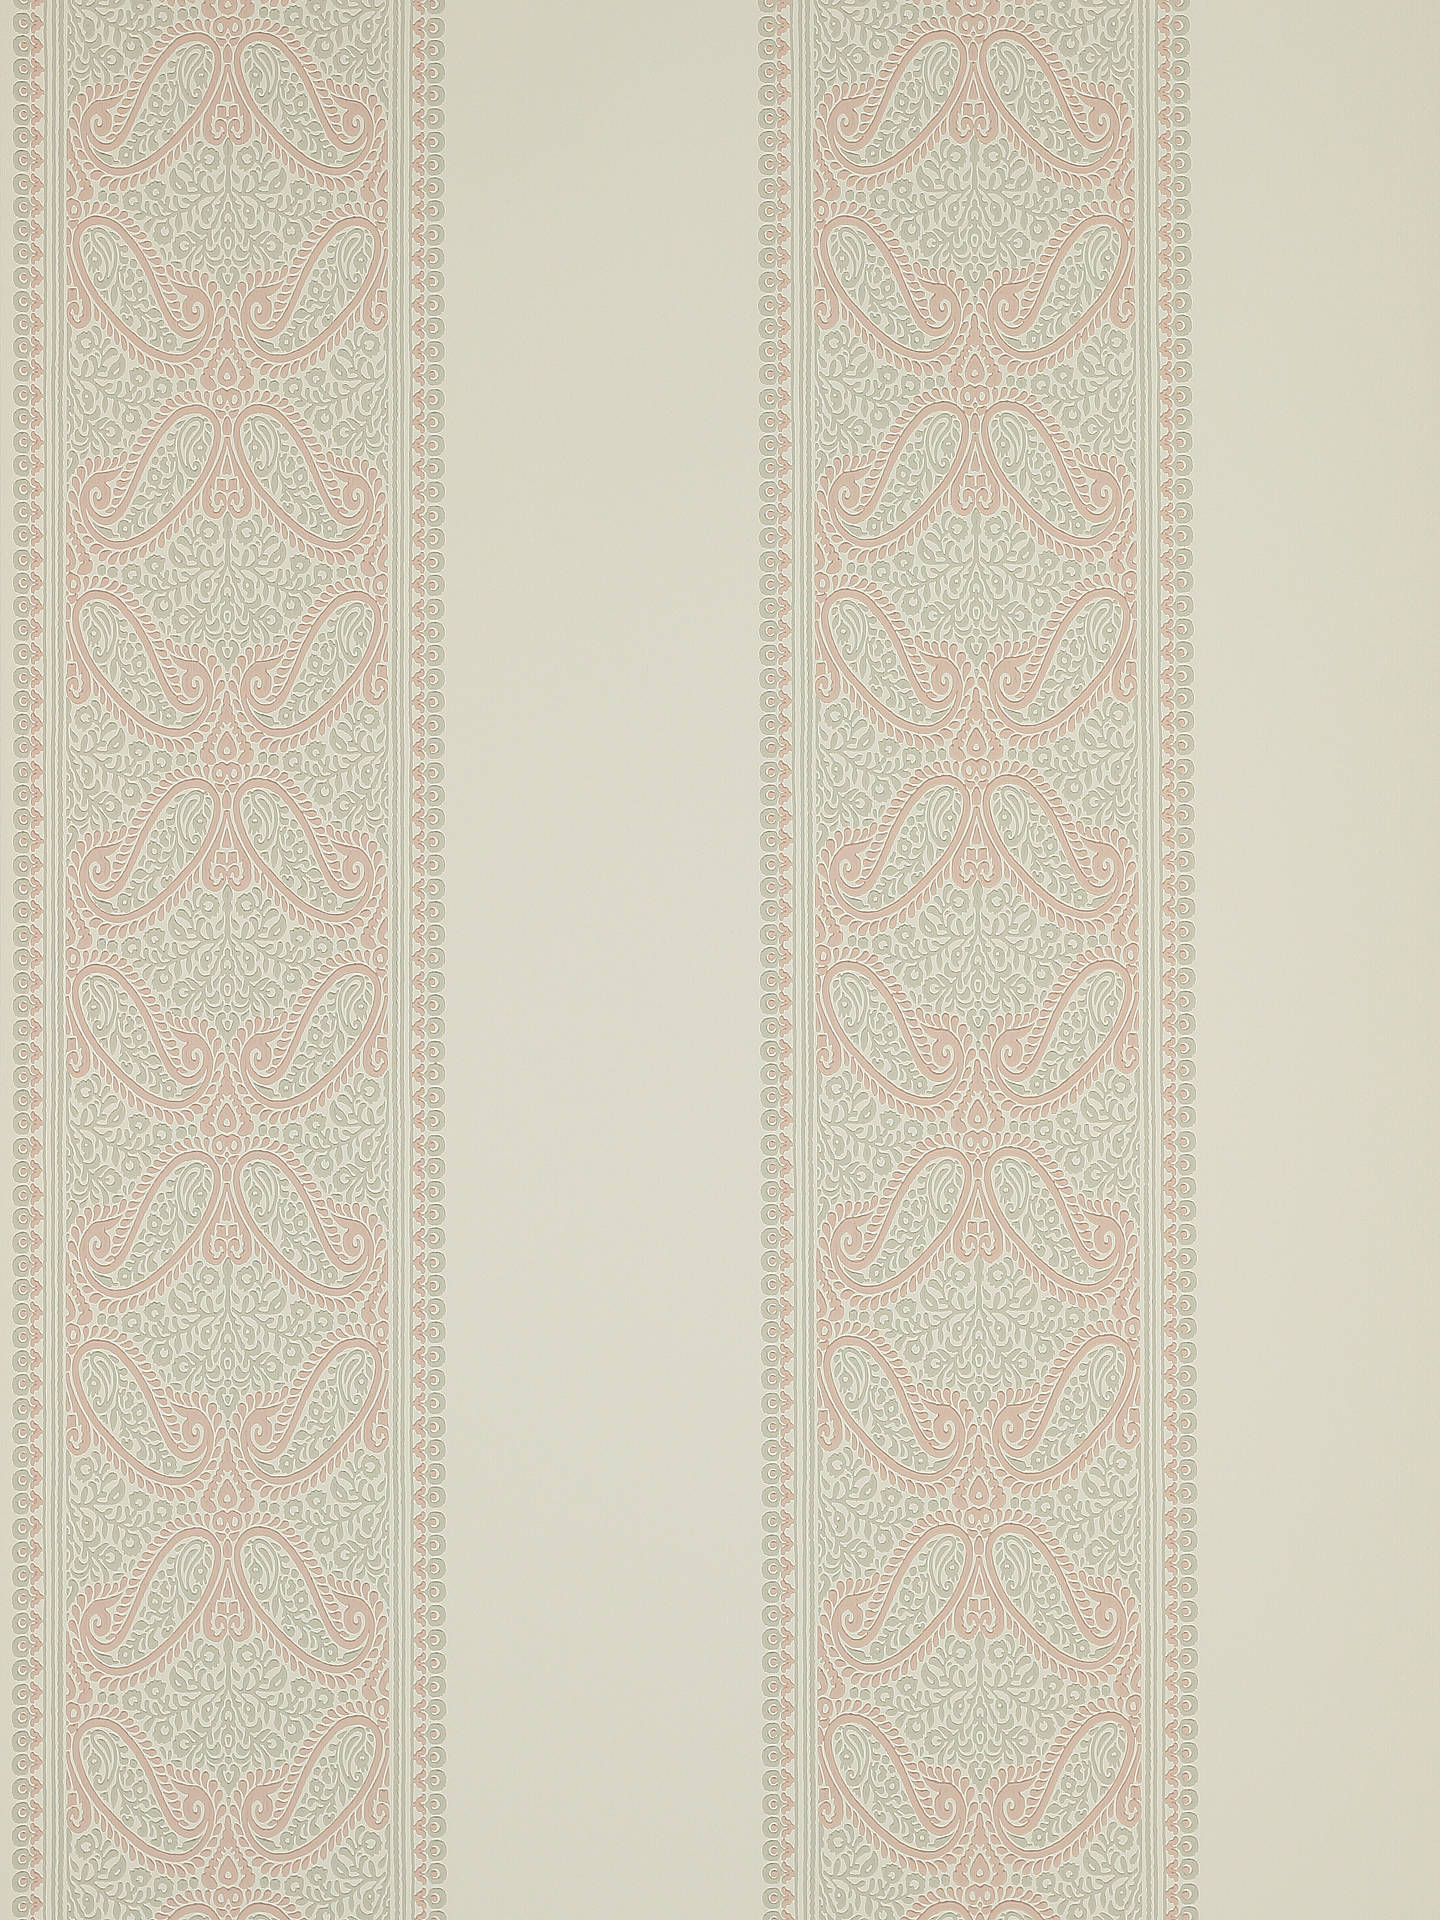 Buy Colefax and Fowler Verney Stripe Wallpaper, Pink 07186/03 Online at johnlewis.com